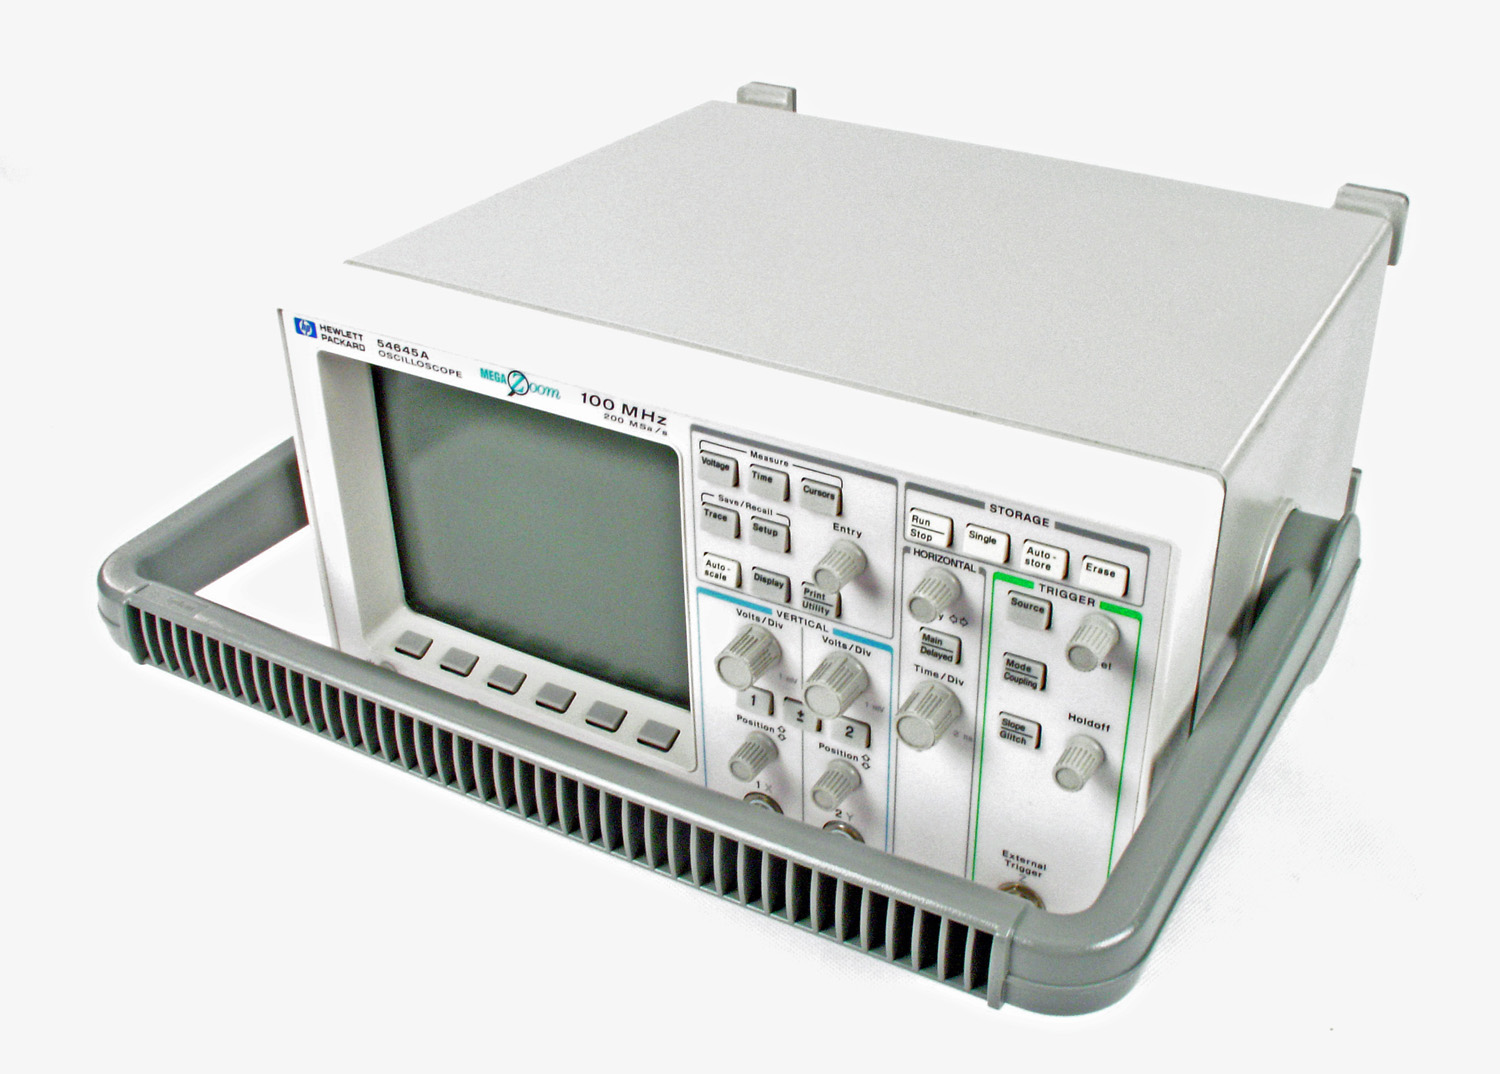 HP / Agilent 54645A for sale